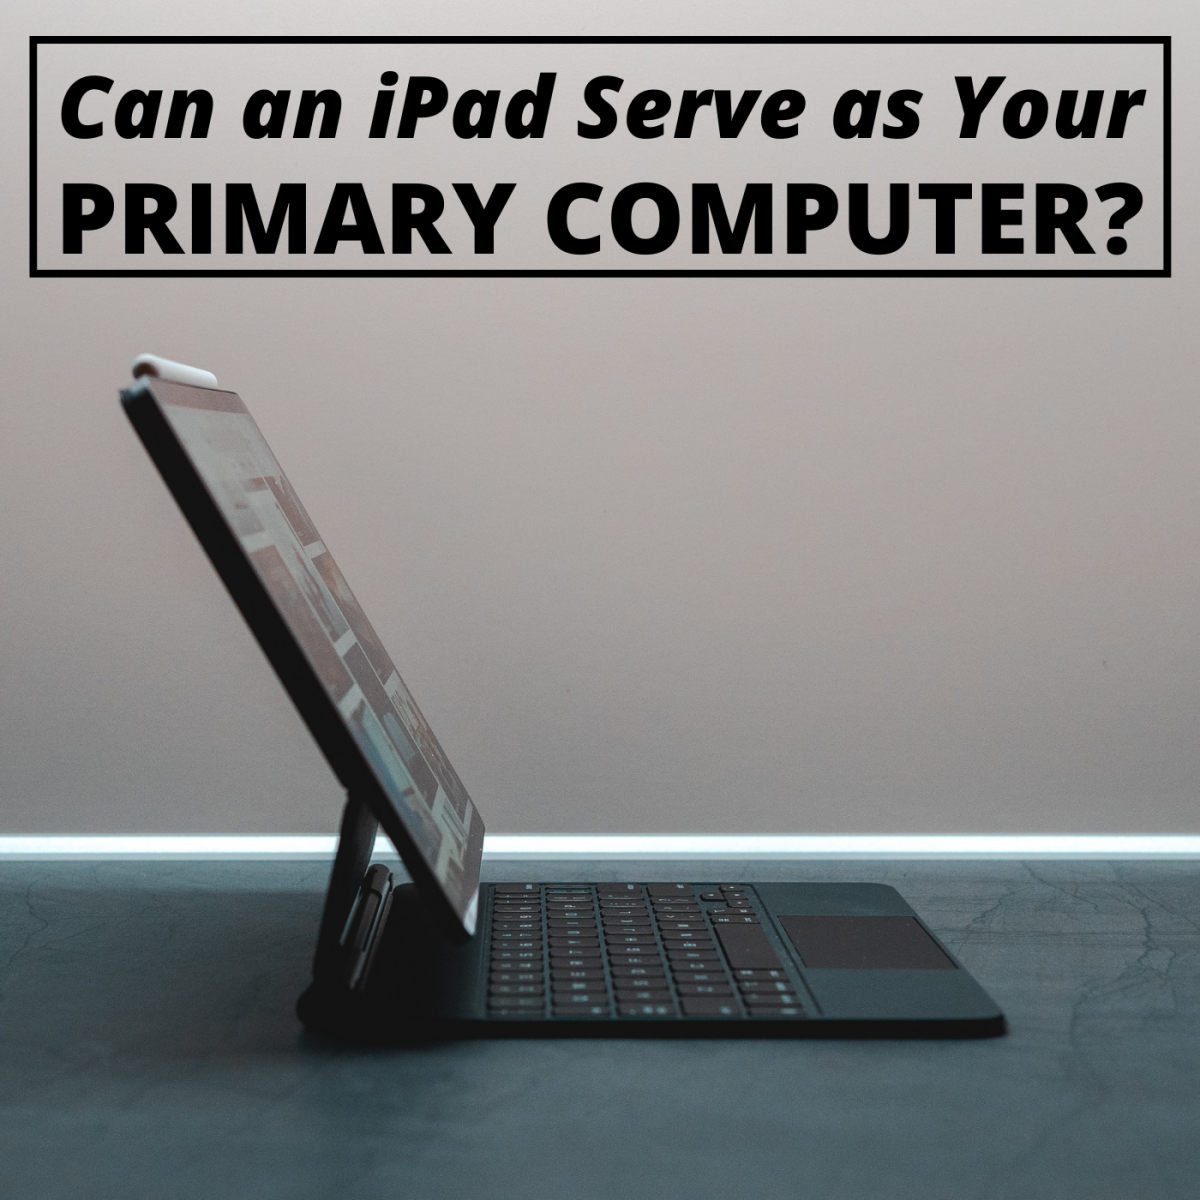 Can you get by with just an iPad for your basic computing needs?